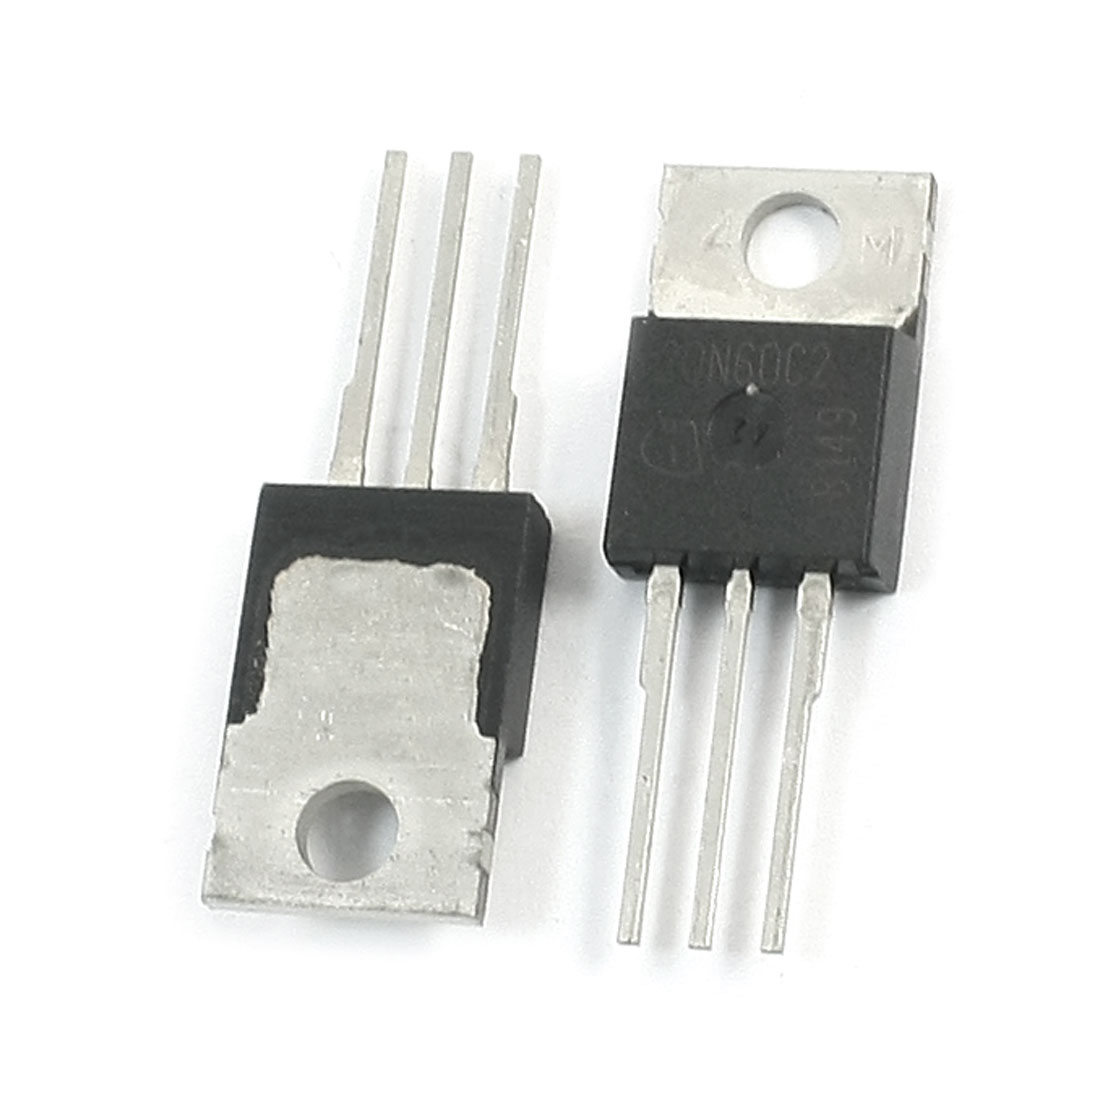 2Pcs SPP20N60C2 650V 20A N Channel MOS Field Effect Power Transistor